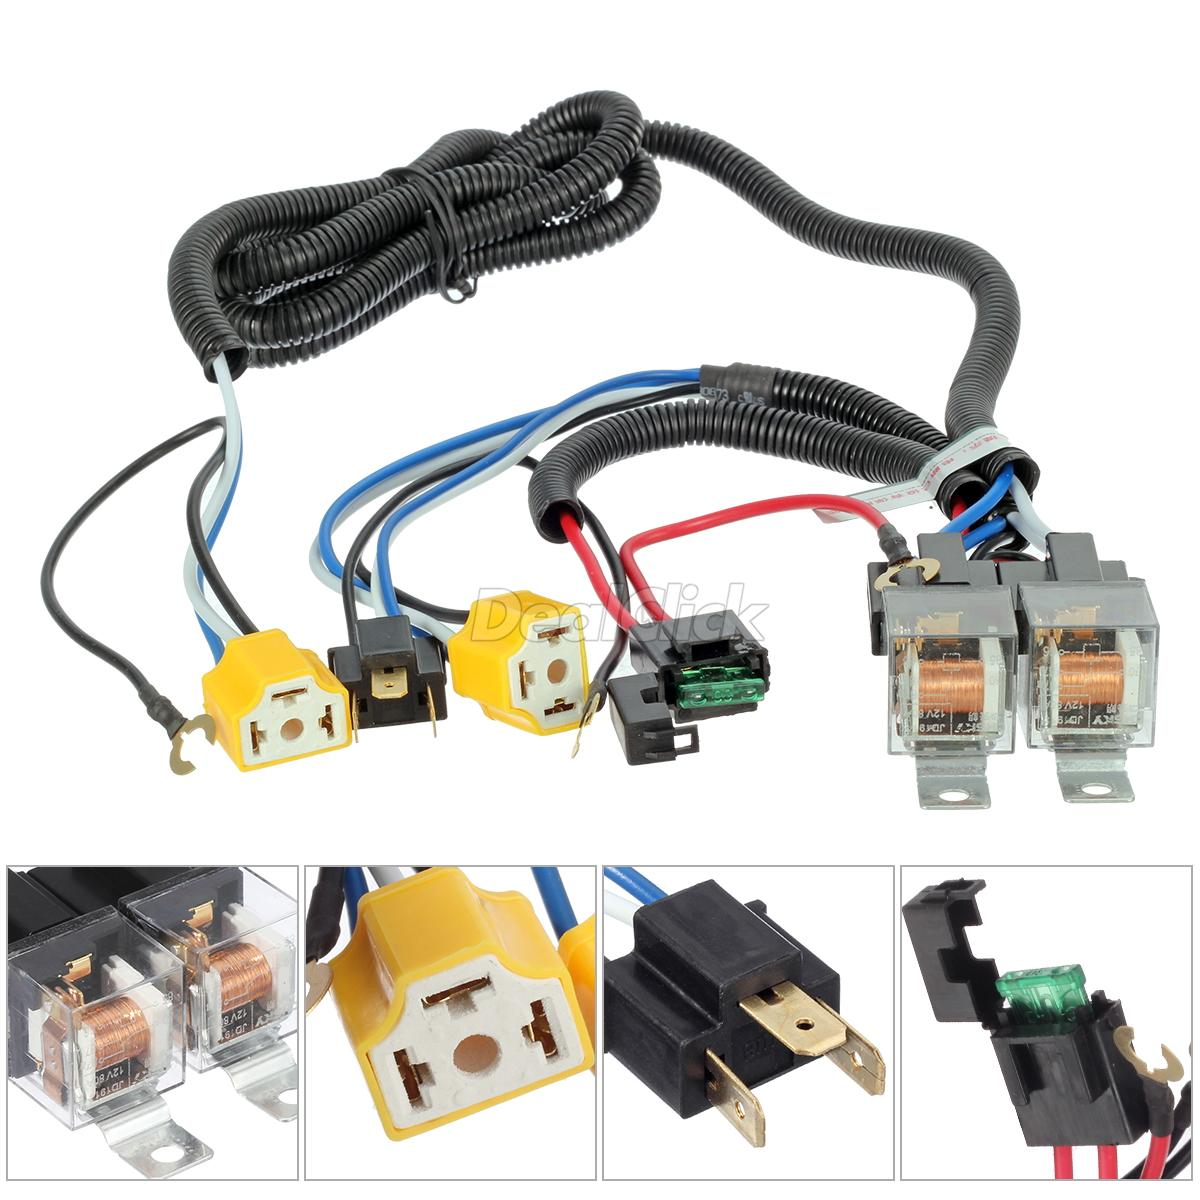 hight resolution of ceramic h4 headlight headlamp h4 light bulb relay wiring harness h4 headlight connector wiring h4 headlight wiring harness headlight